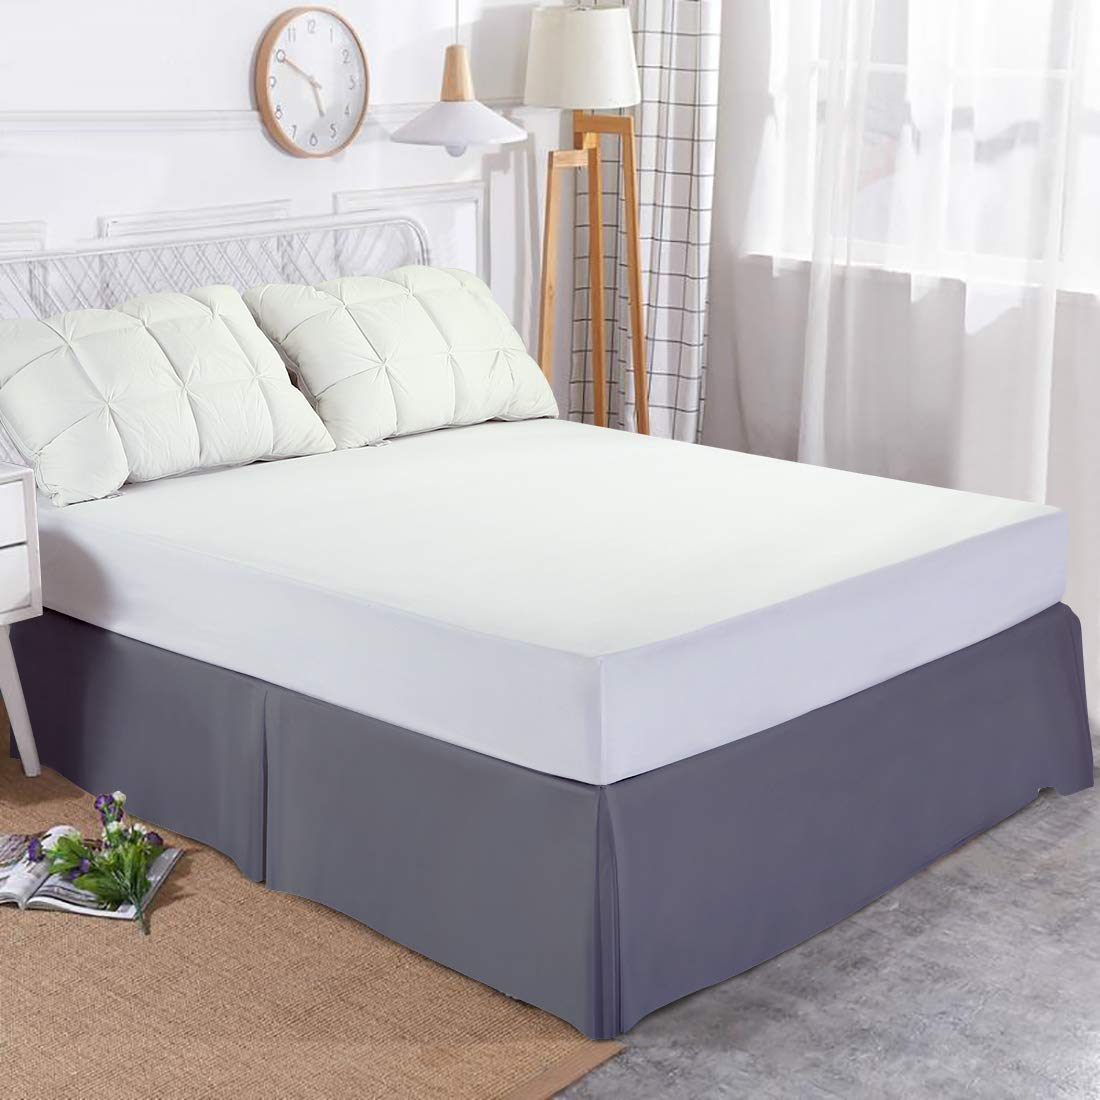 Edilly Hotel Luxury Bed Skirt Soft Microfiber 15-Inch Drop Wrinkle /& Fade Resistant White, Queen